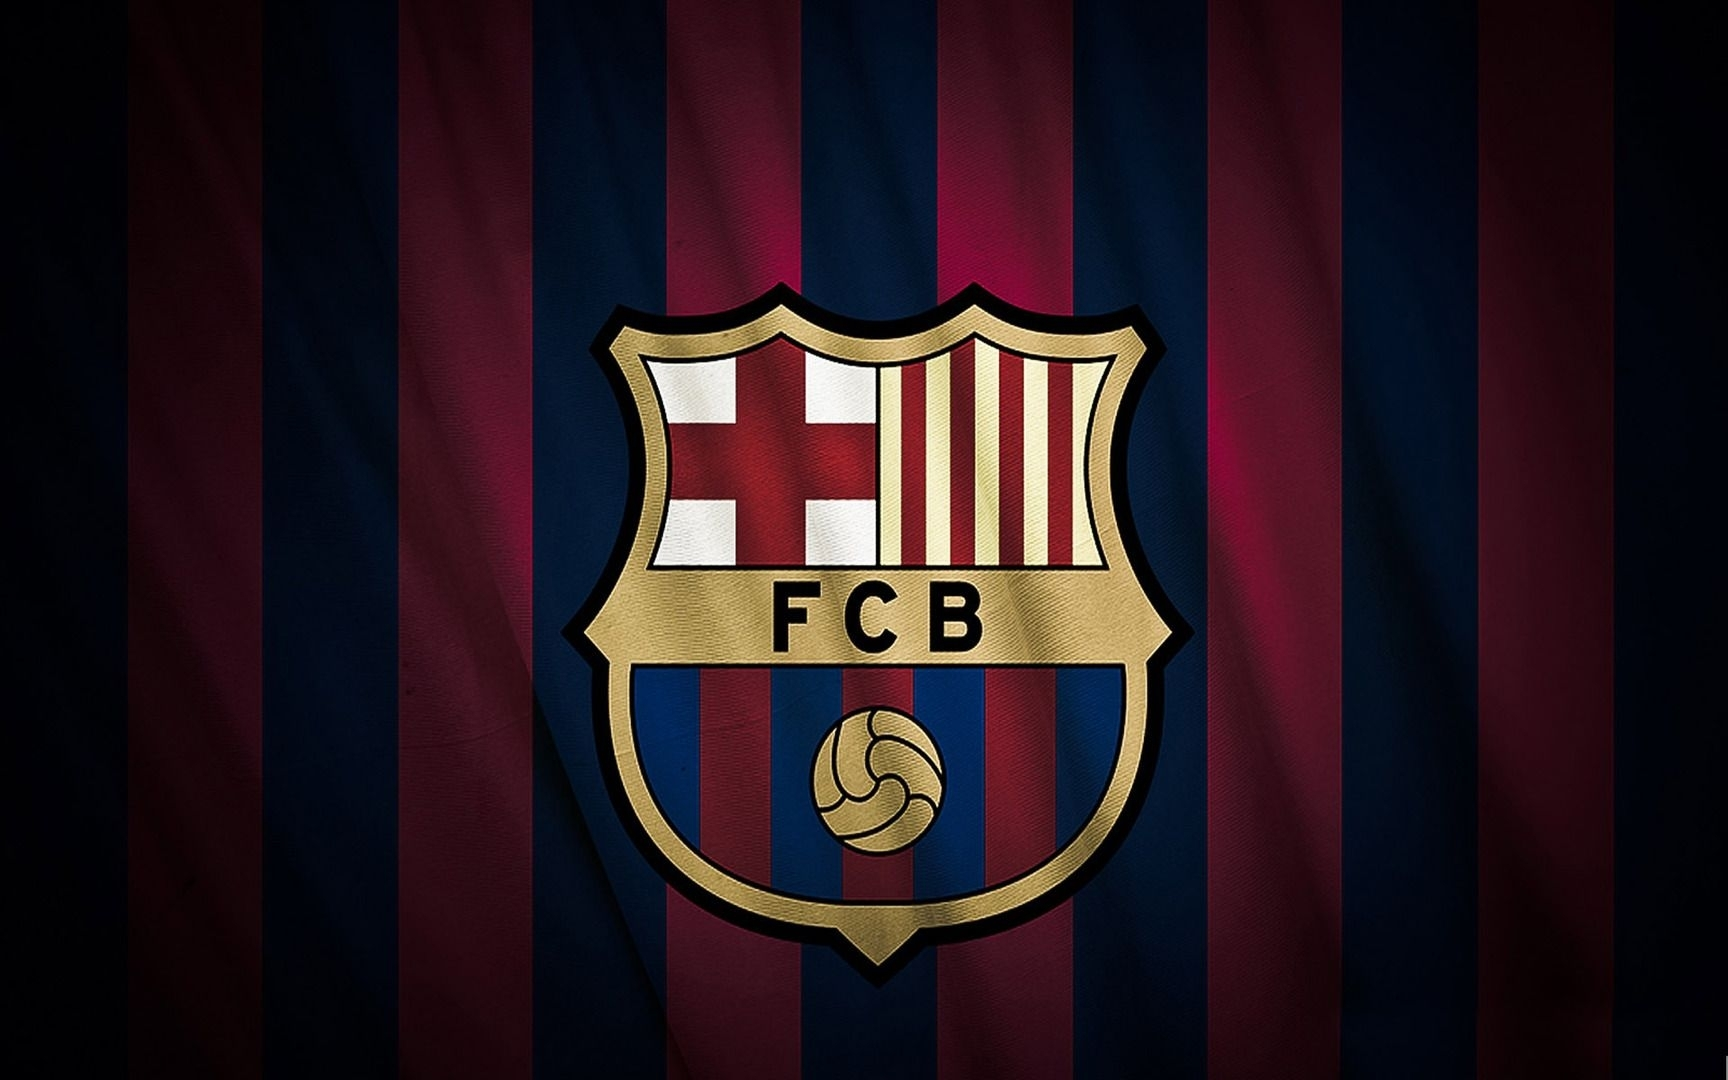 fc barcelona flag wallpaper | ideas for the house | pinterest